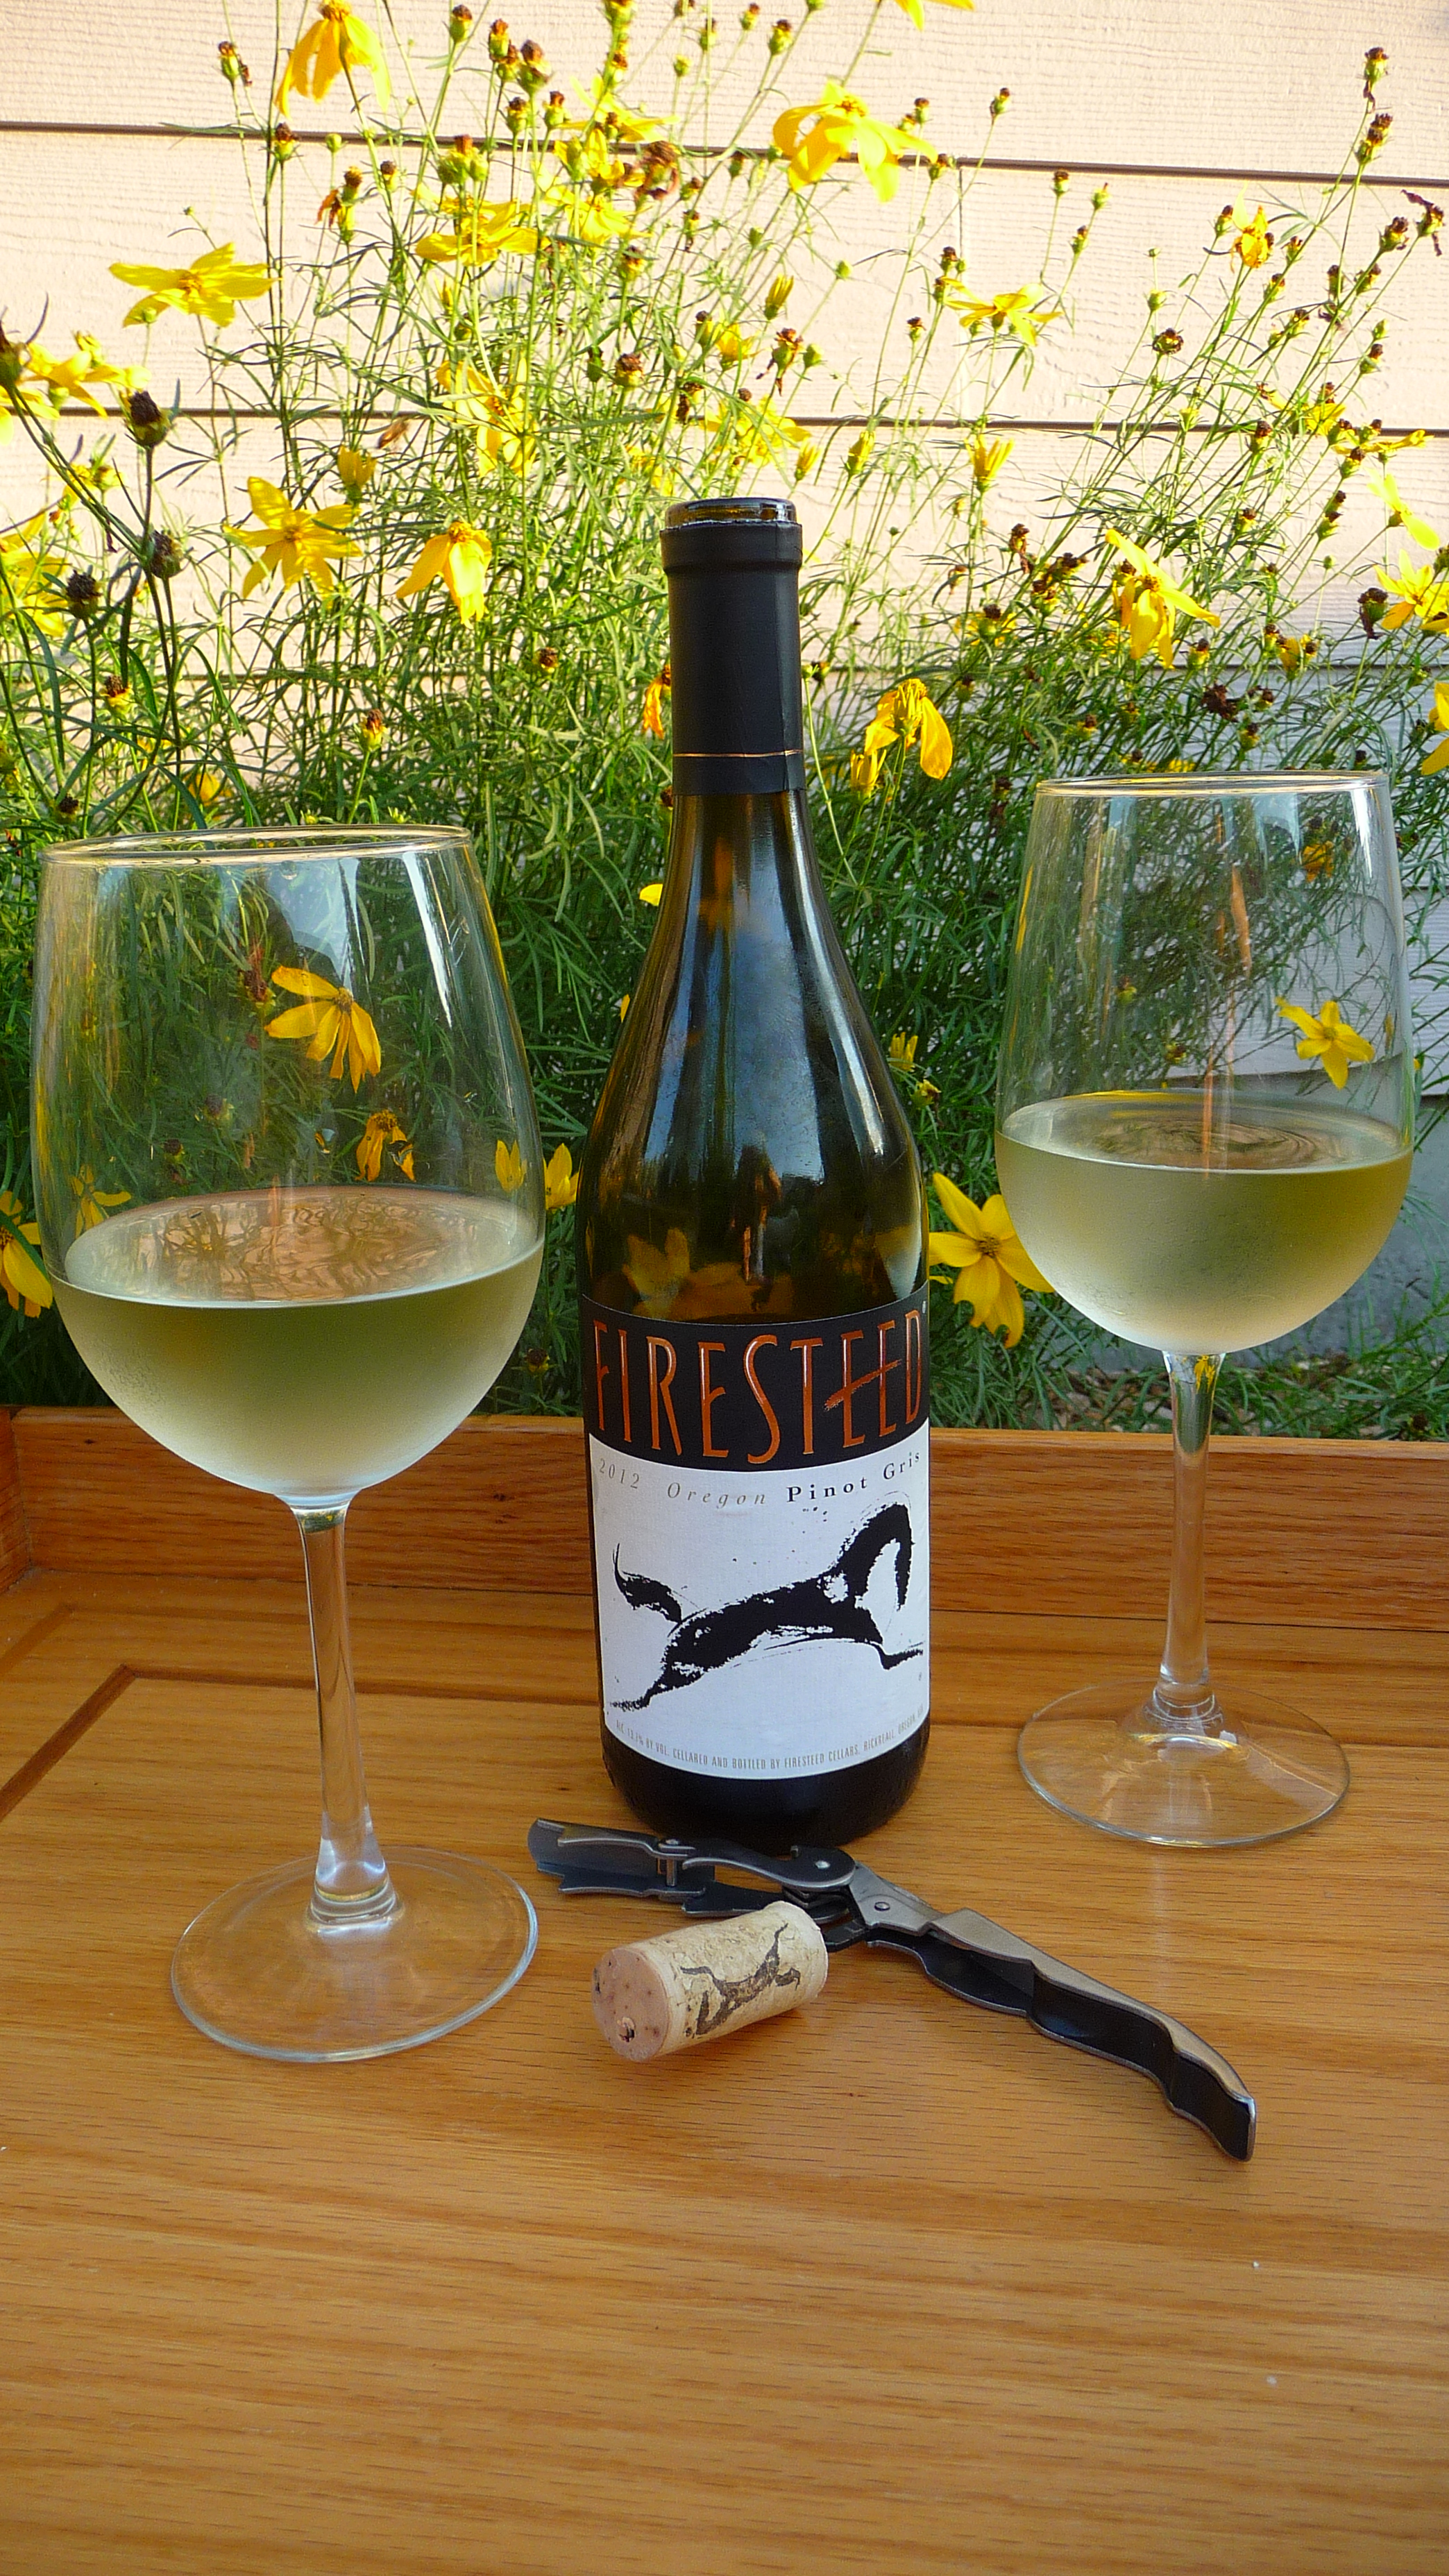 Oregon is one of the top regions for Pinot Gris and this Firesteed Pinot had a clean minerality on the nose and apple on the palate